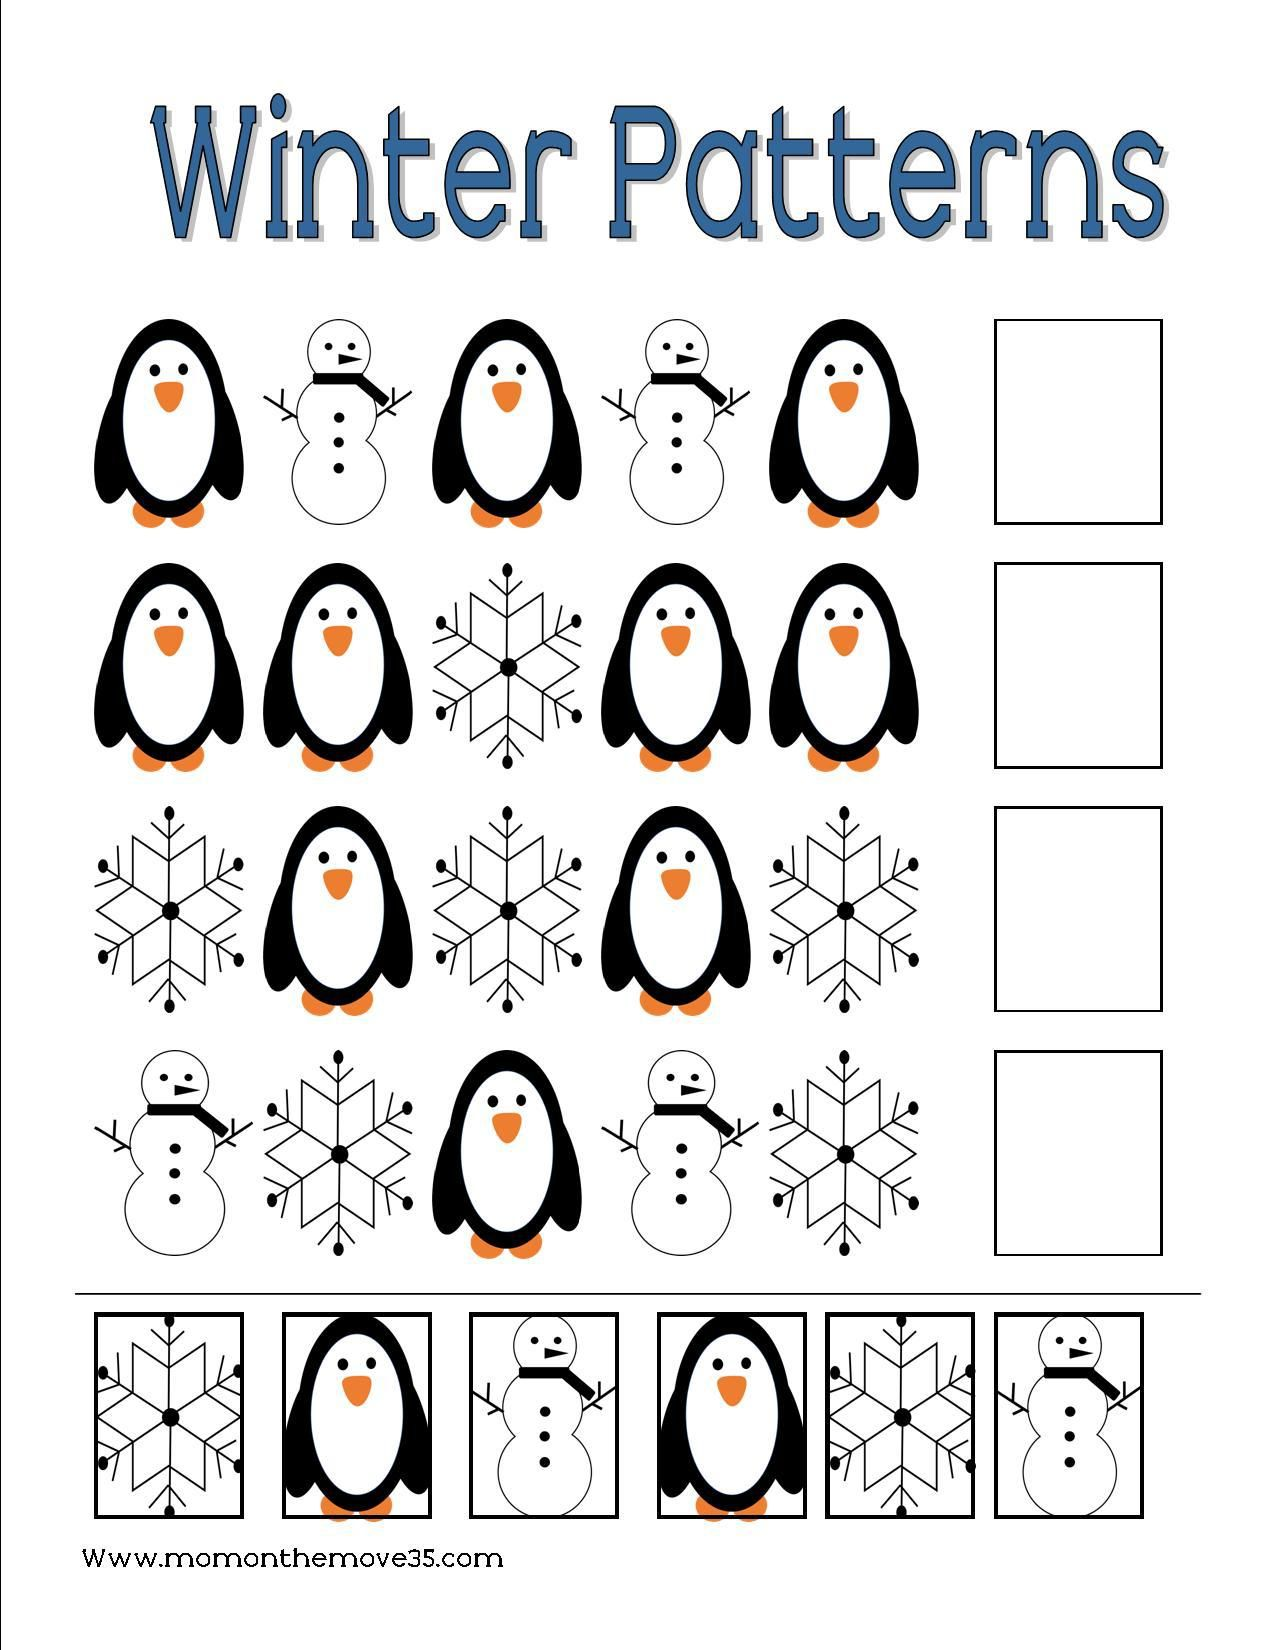 Penguin Patterns 1 275 1 650 Pixels